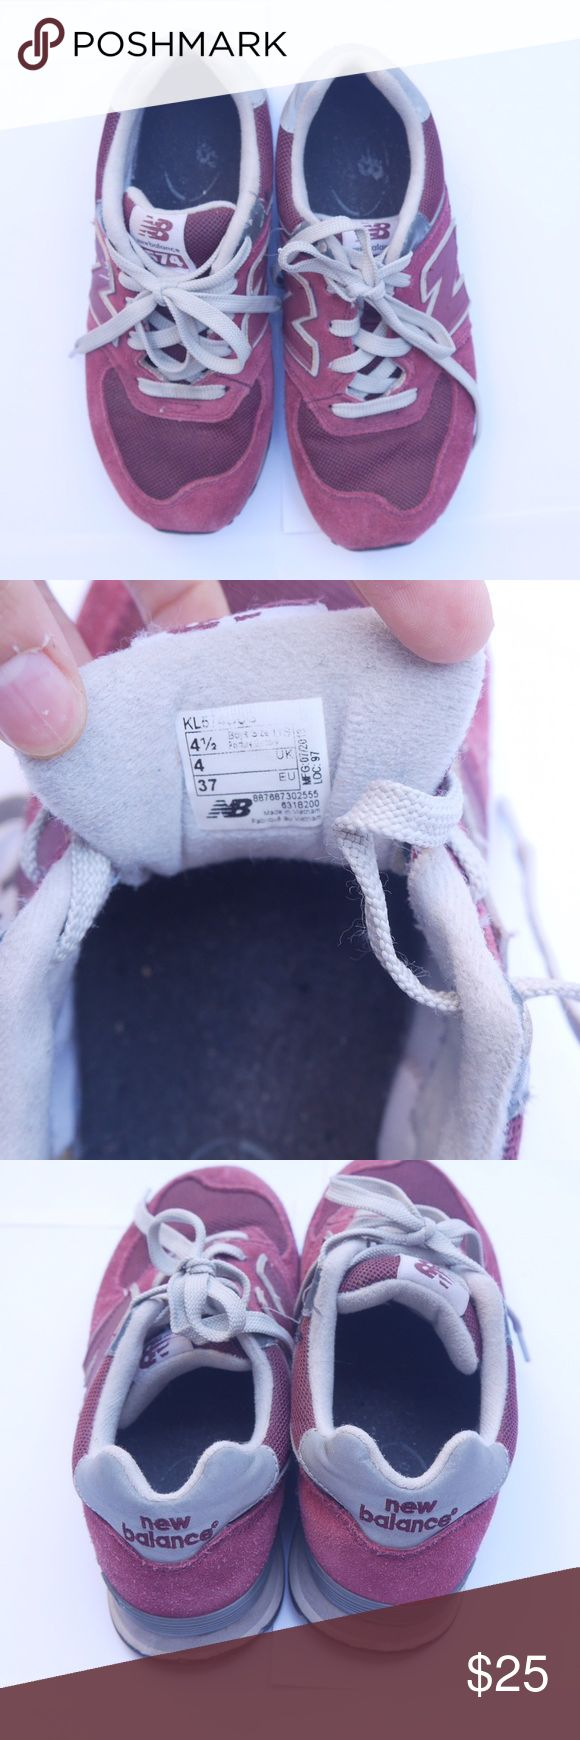 NEW BALANCE - 574 burgundy sneakers These have been worn multiple times but still have a lot of life left. I bought a kid size because they were cheaper but a 4.5 boy size is a 6.5 women size. They are very comfortable. New Balance Shoes Sneakers